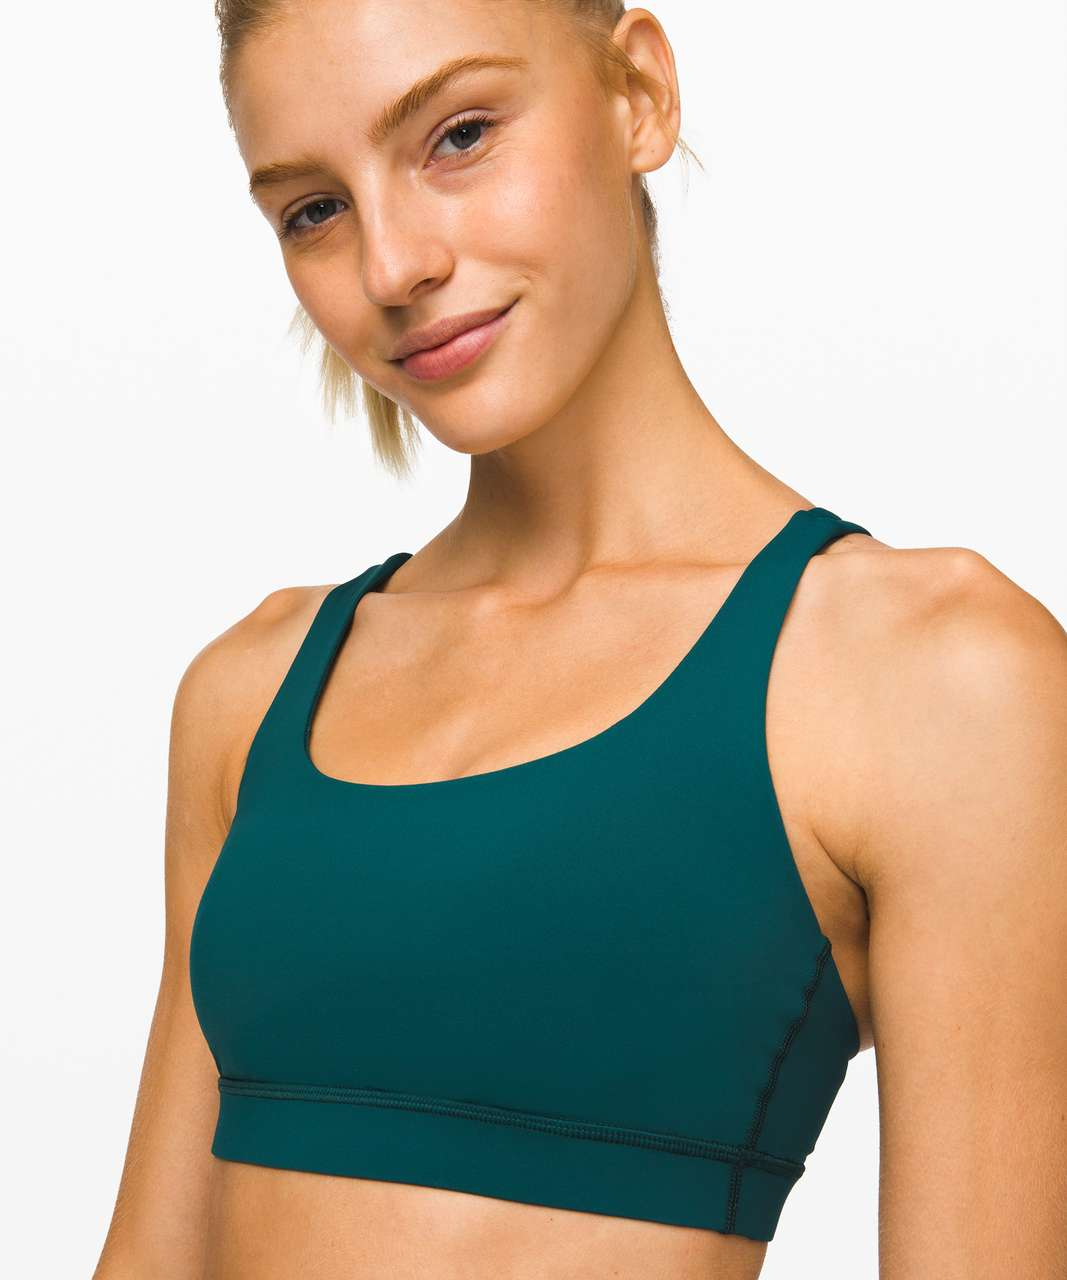 Lululemon Energy Bra - Royal Emerald